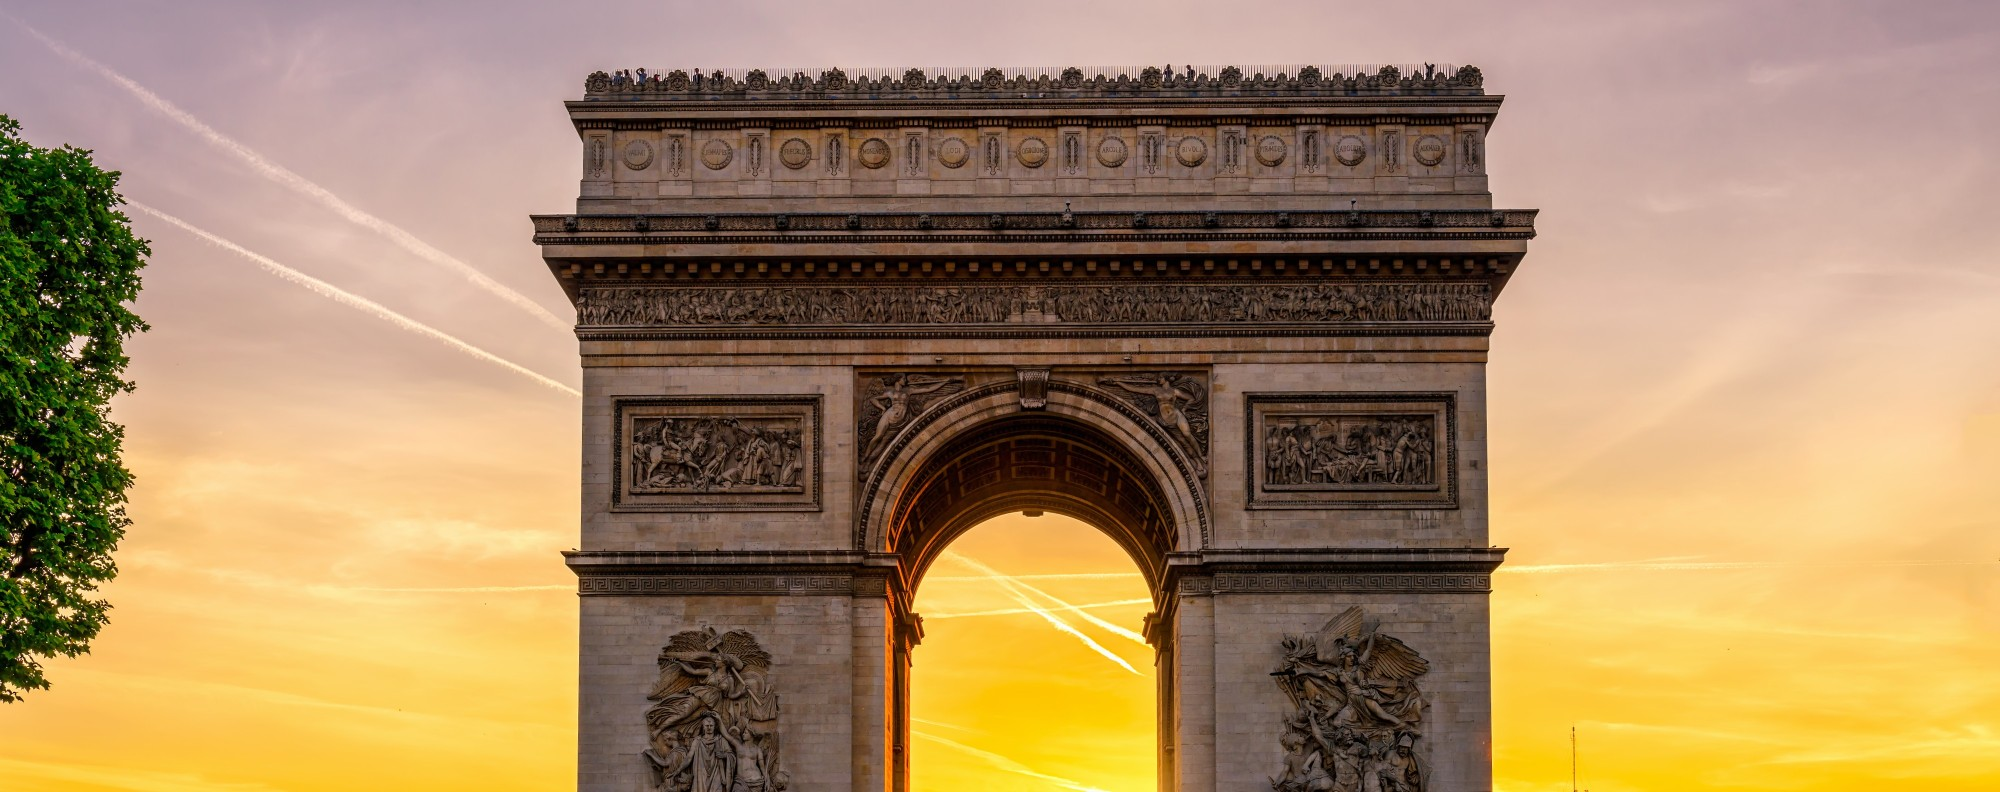 The Arc de Triomphe is one of Paris' many iconic monuments.